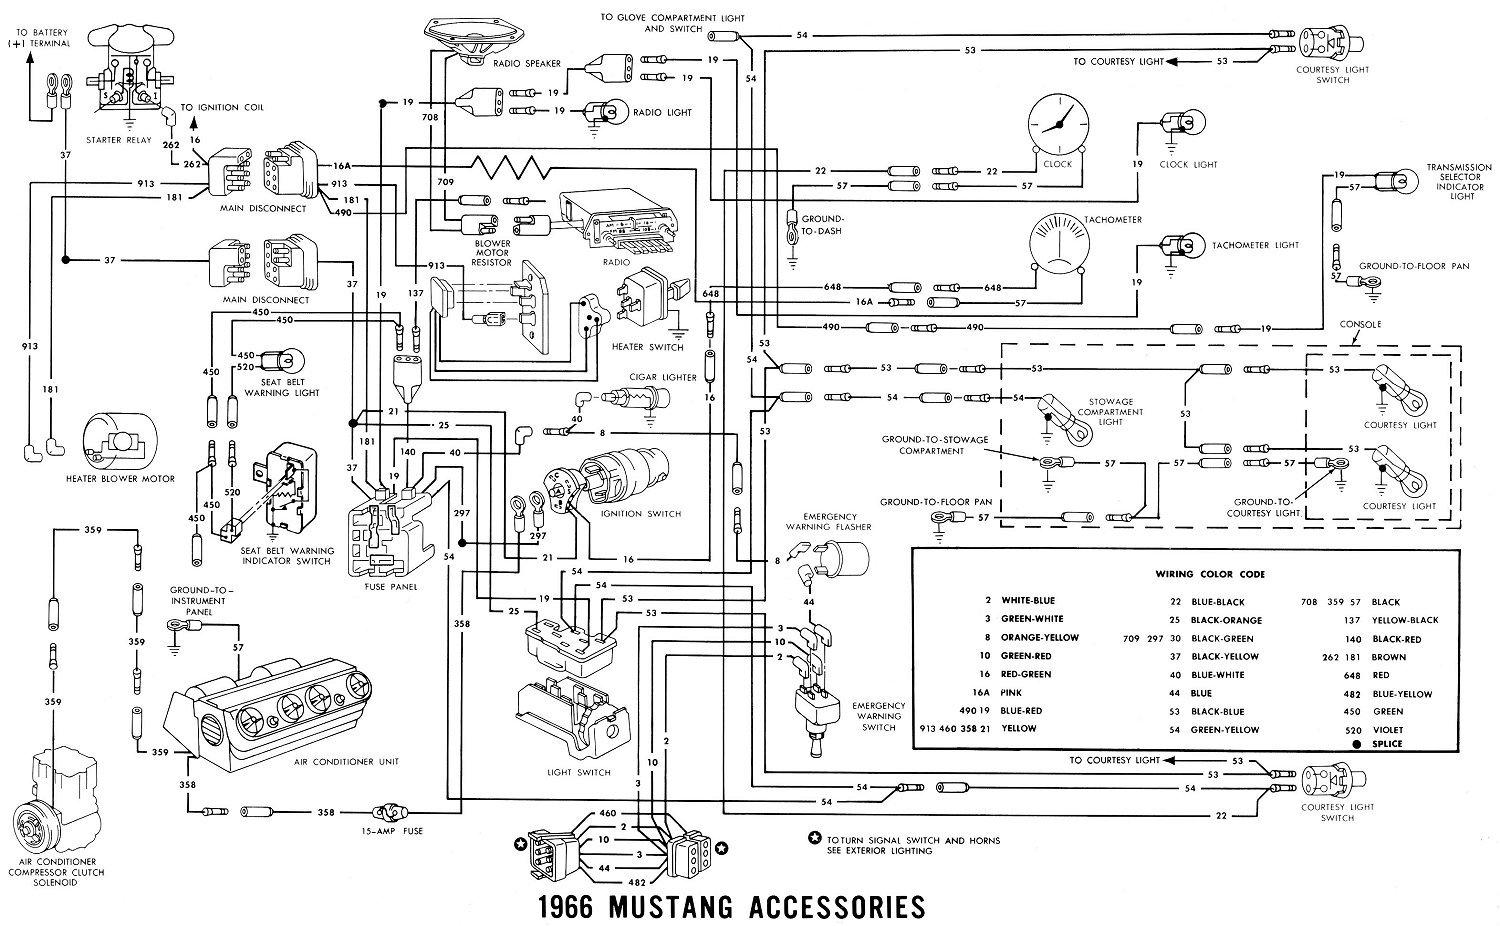 vintage mustang wiring diagrams rh midlife66 com car accessories wiring diagram Wireless Camera Wiring Diagram